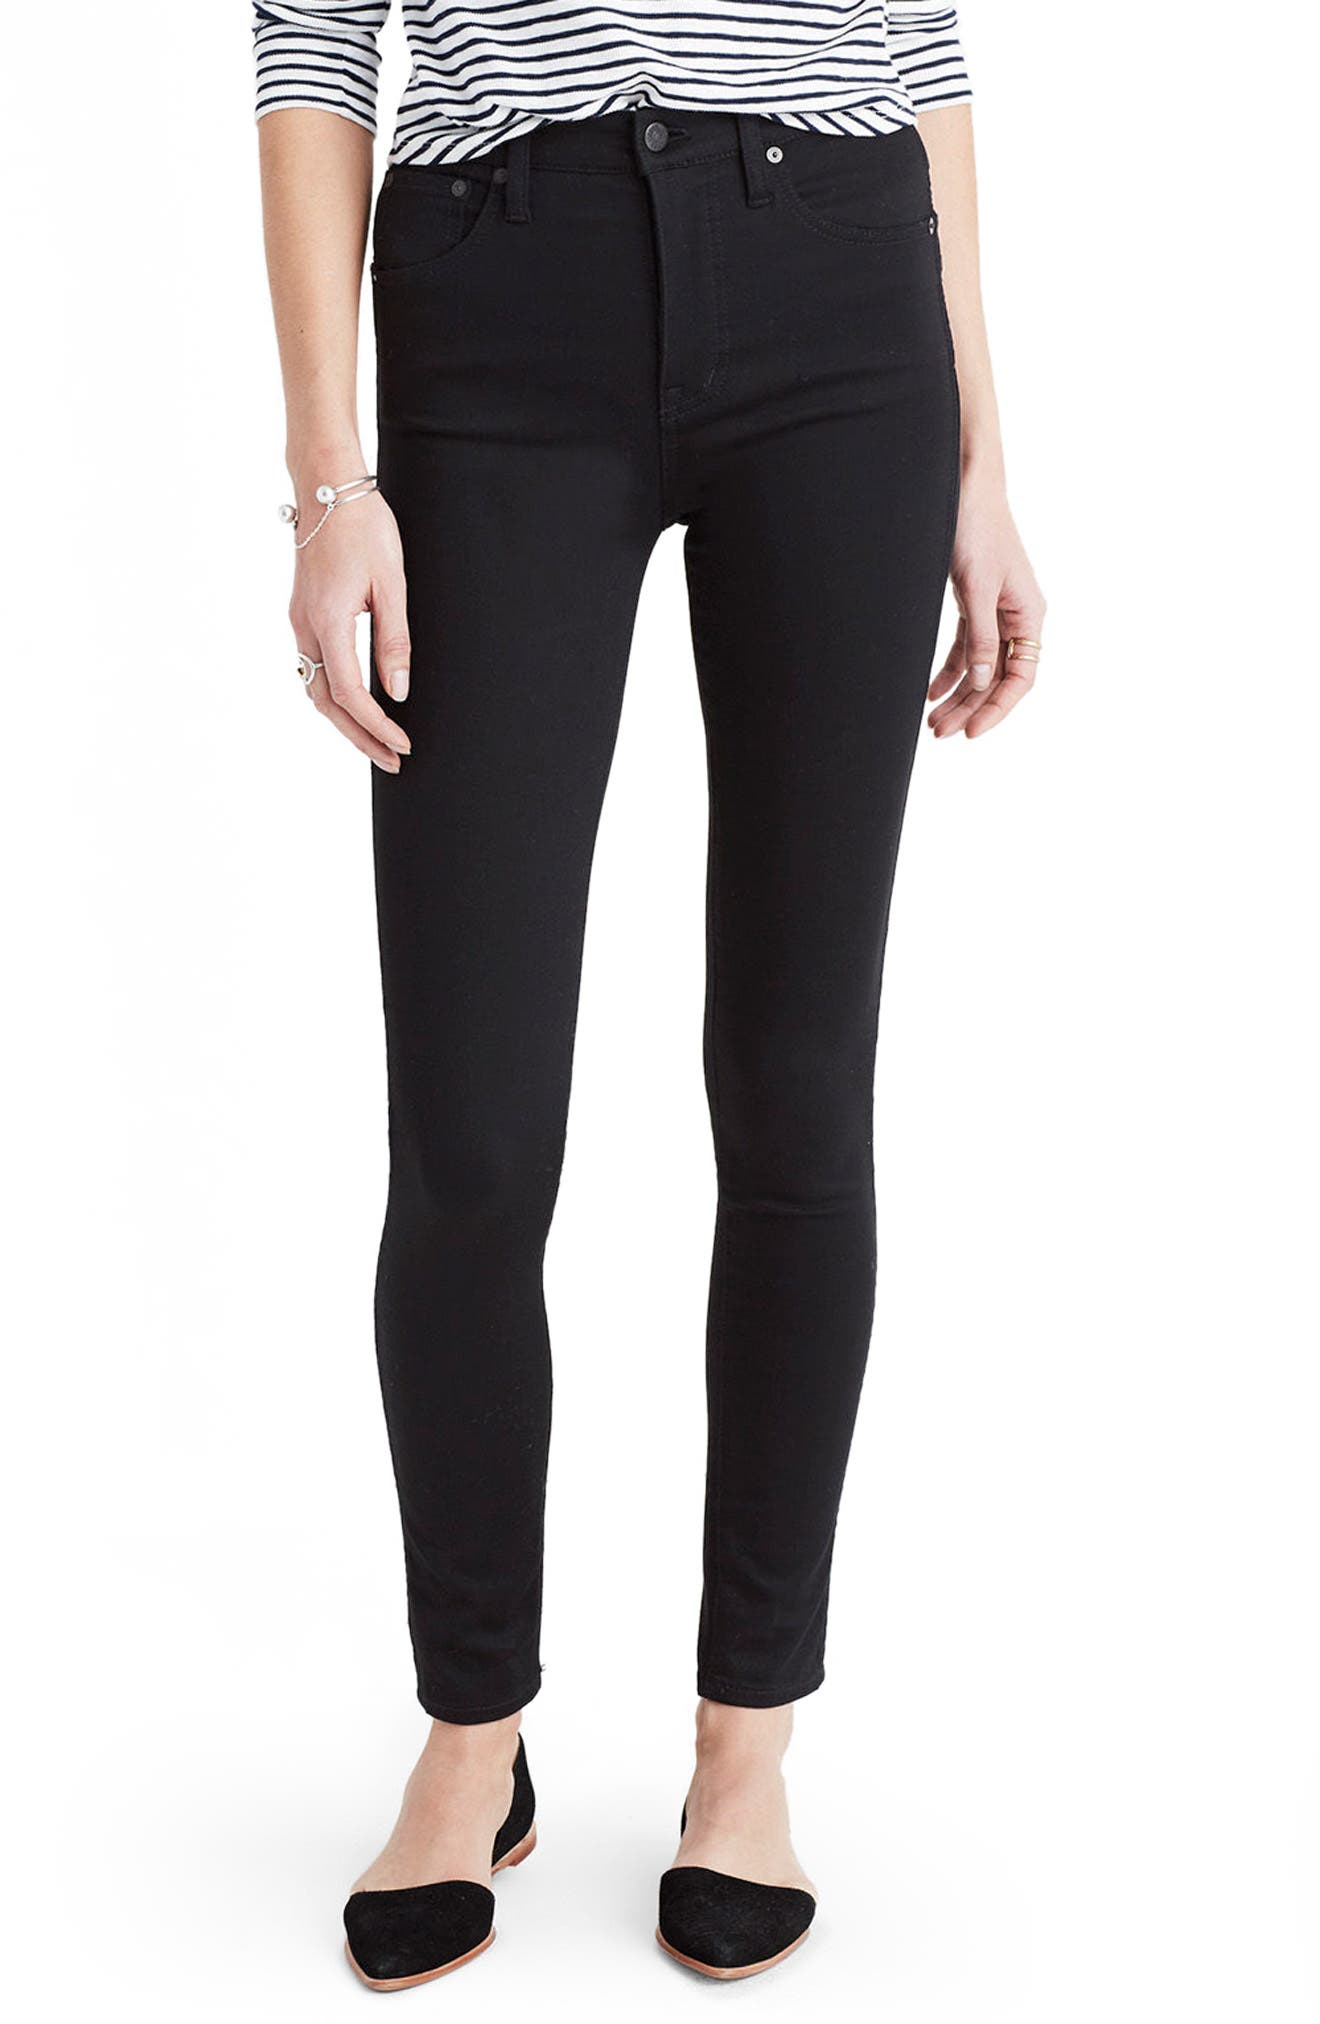 10-Inch High Waist Skinny Jeans,                         Main,                         color, 009